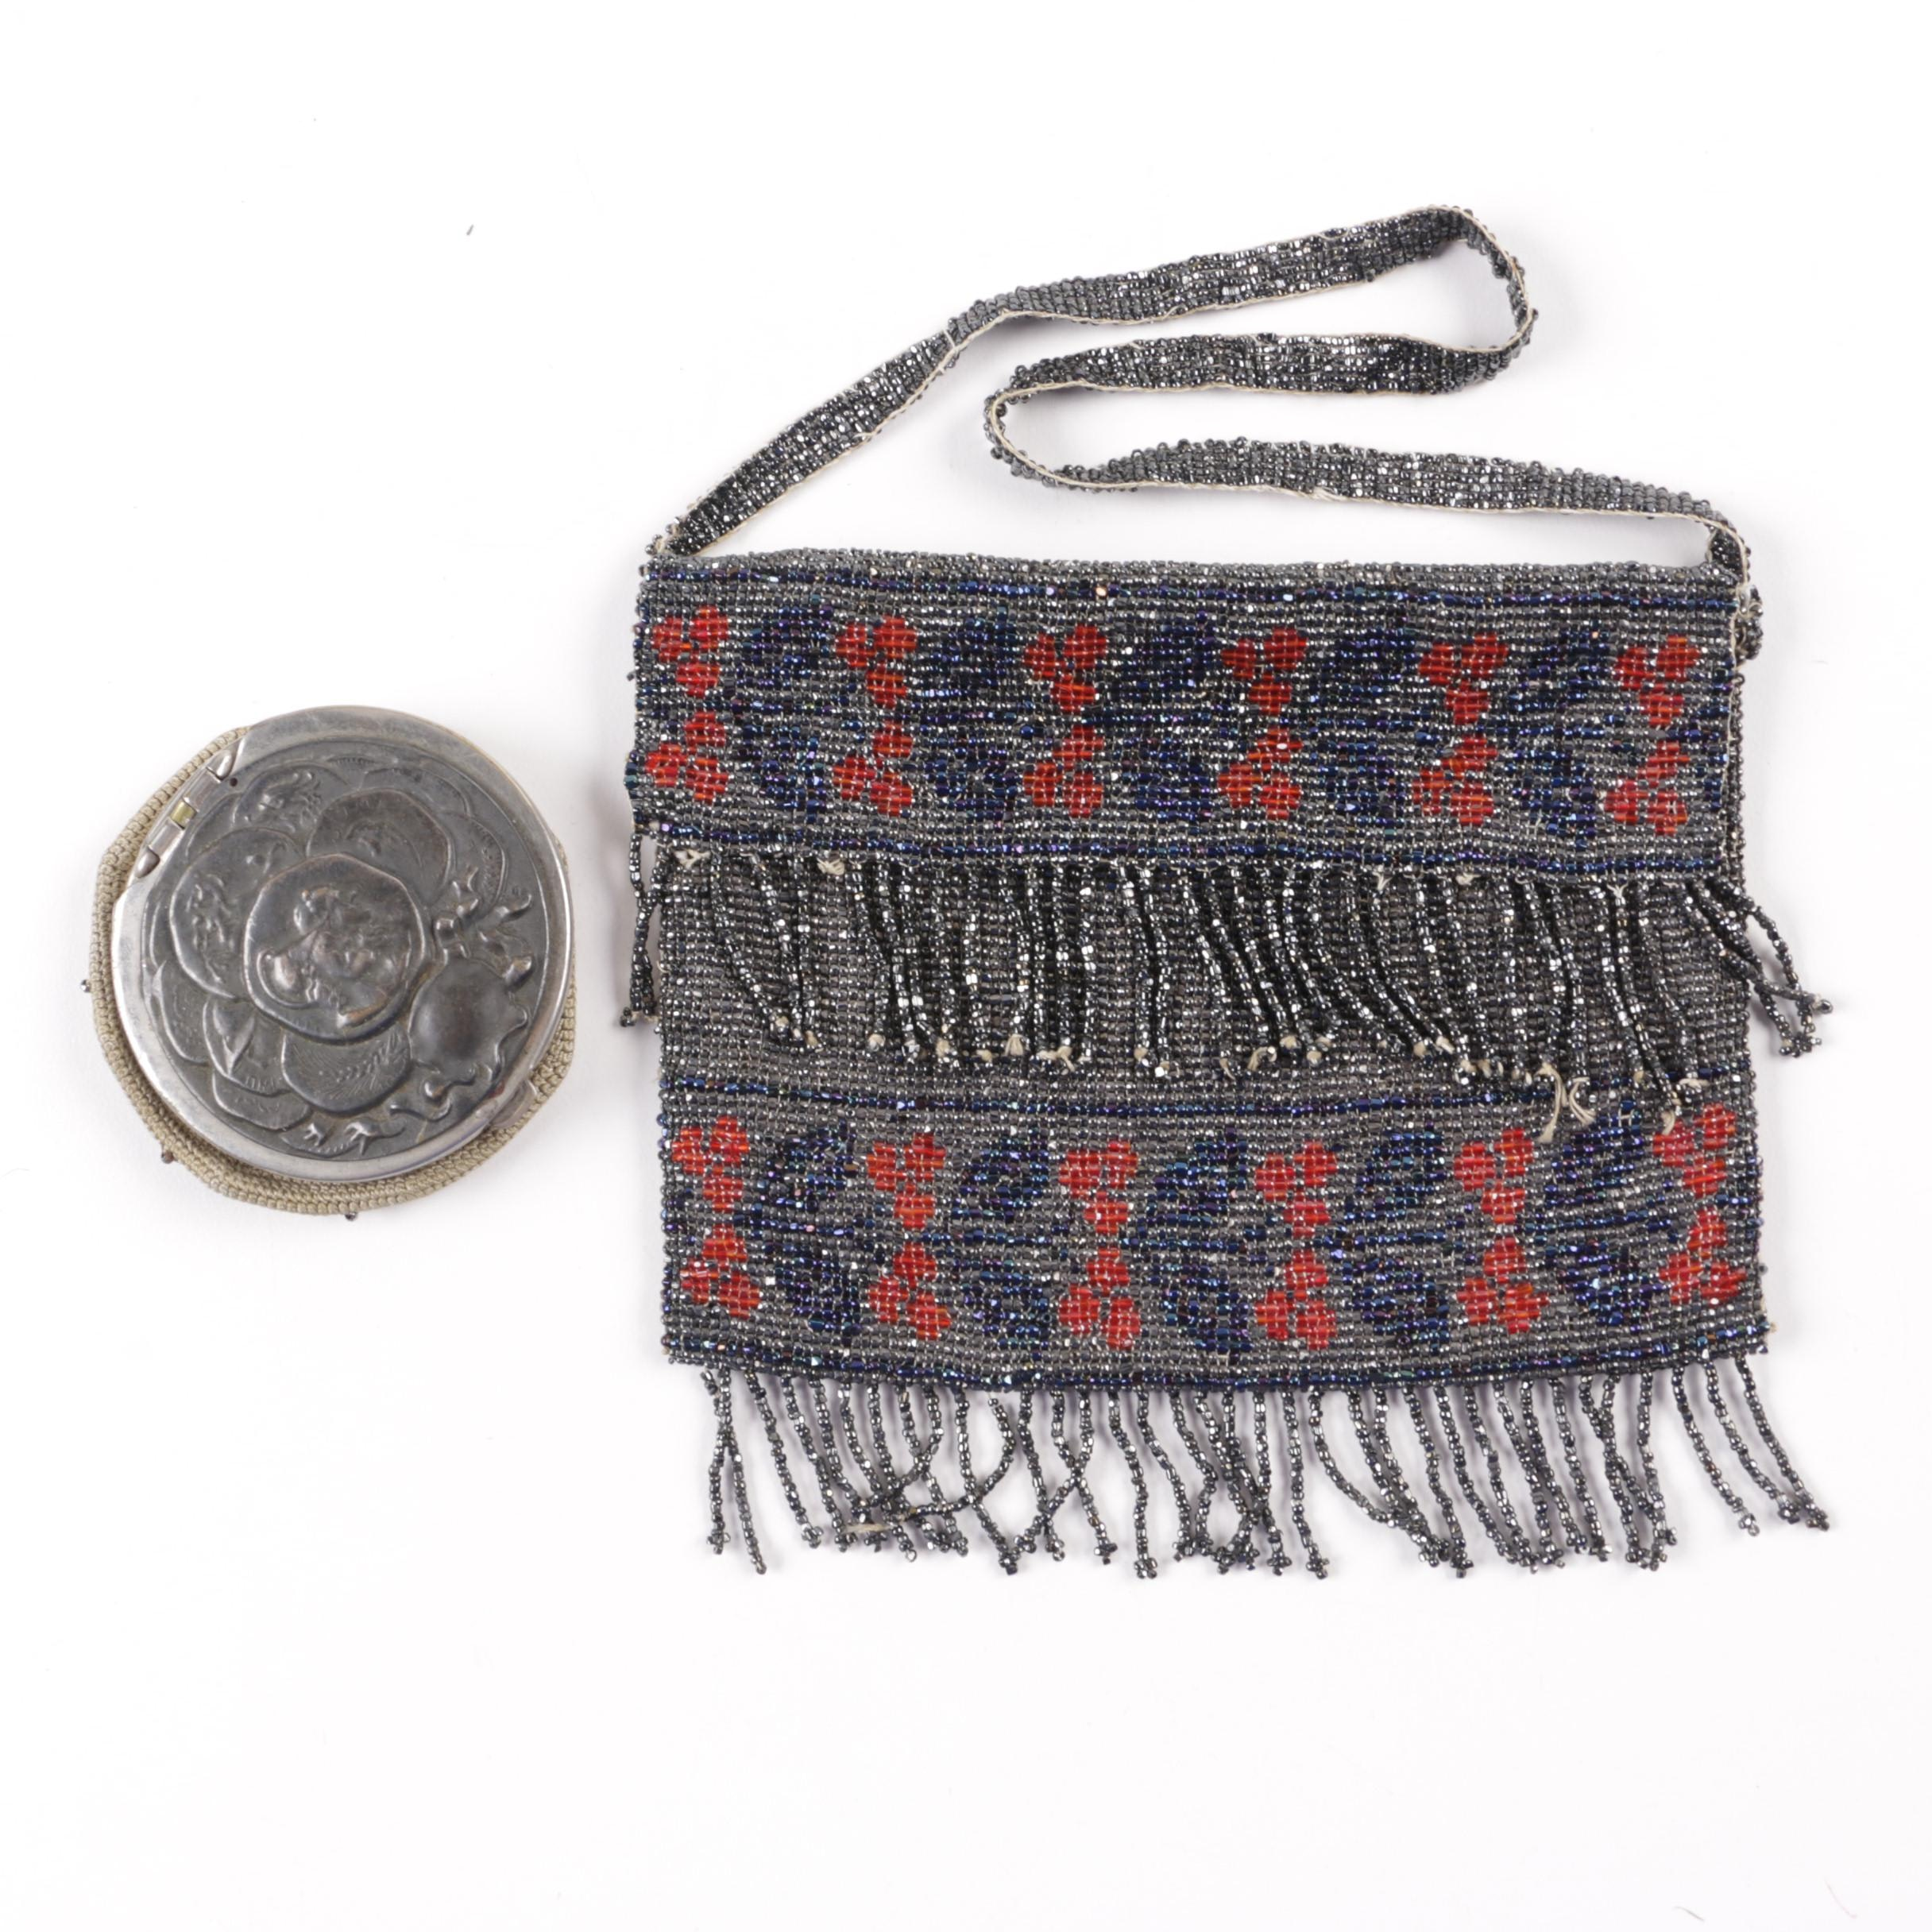 C. 1903 Beaded Coin Pouch and Handbag